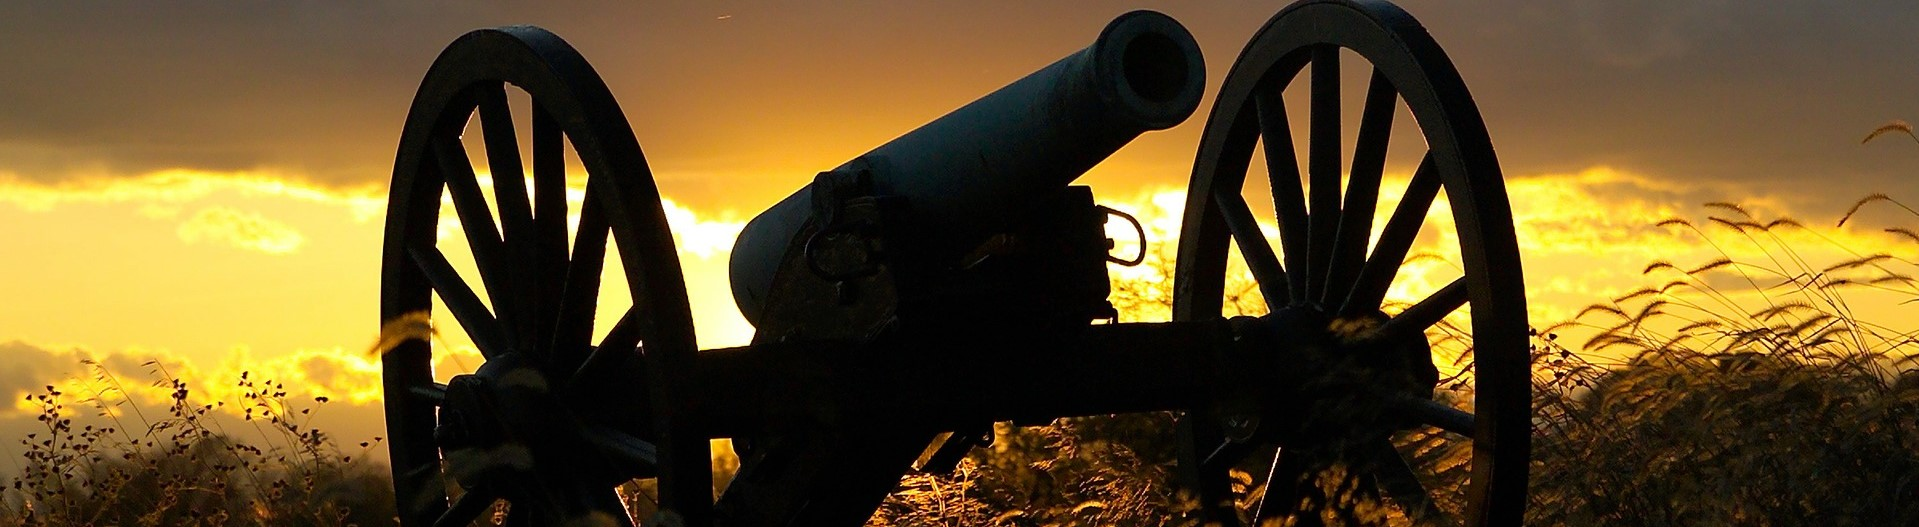 Old Artillery in Marland - CarDonations4Cancer.org